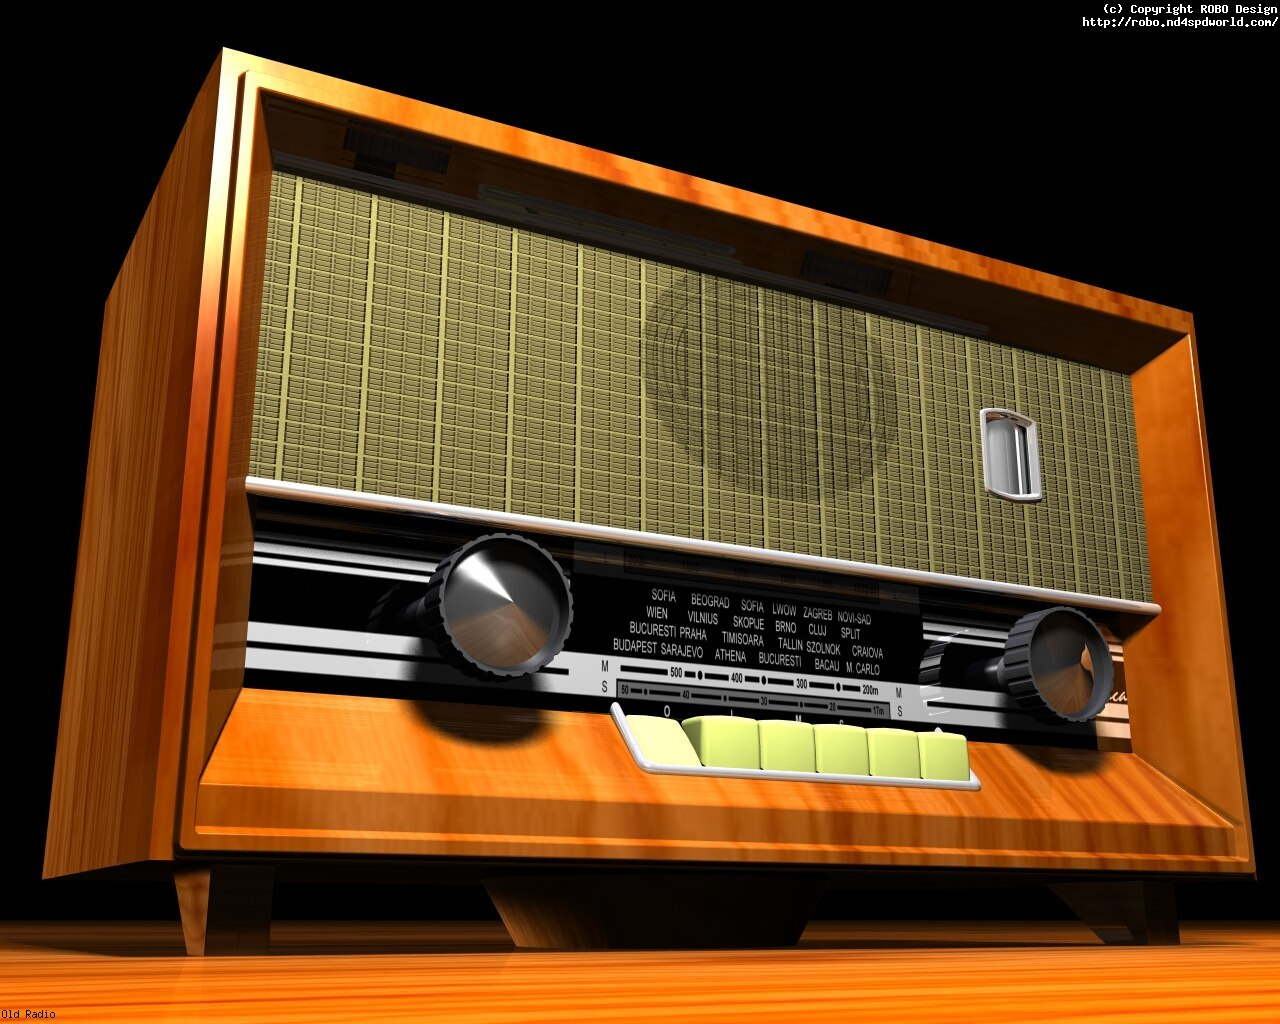 Old Radio by robodesign